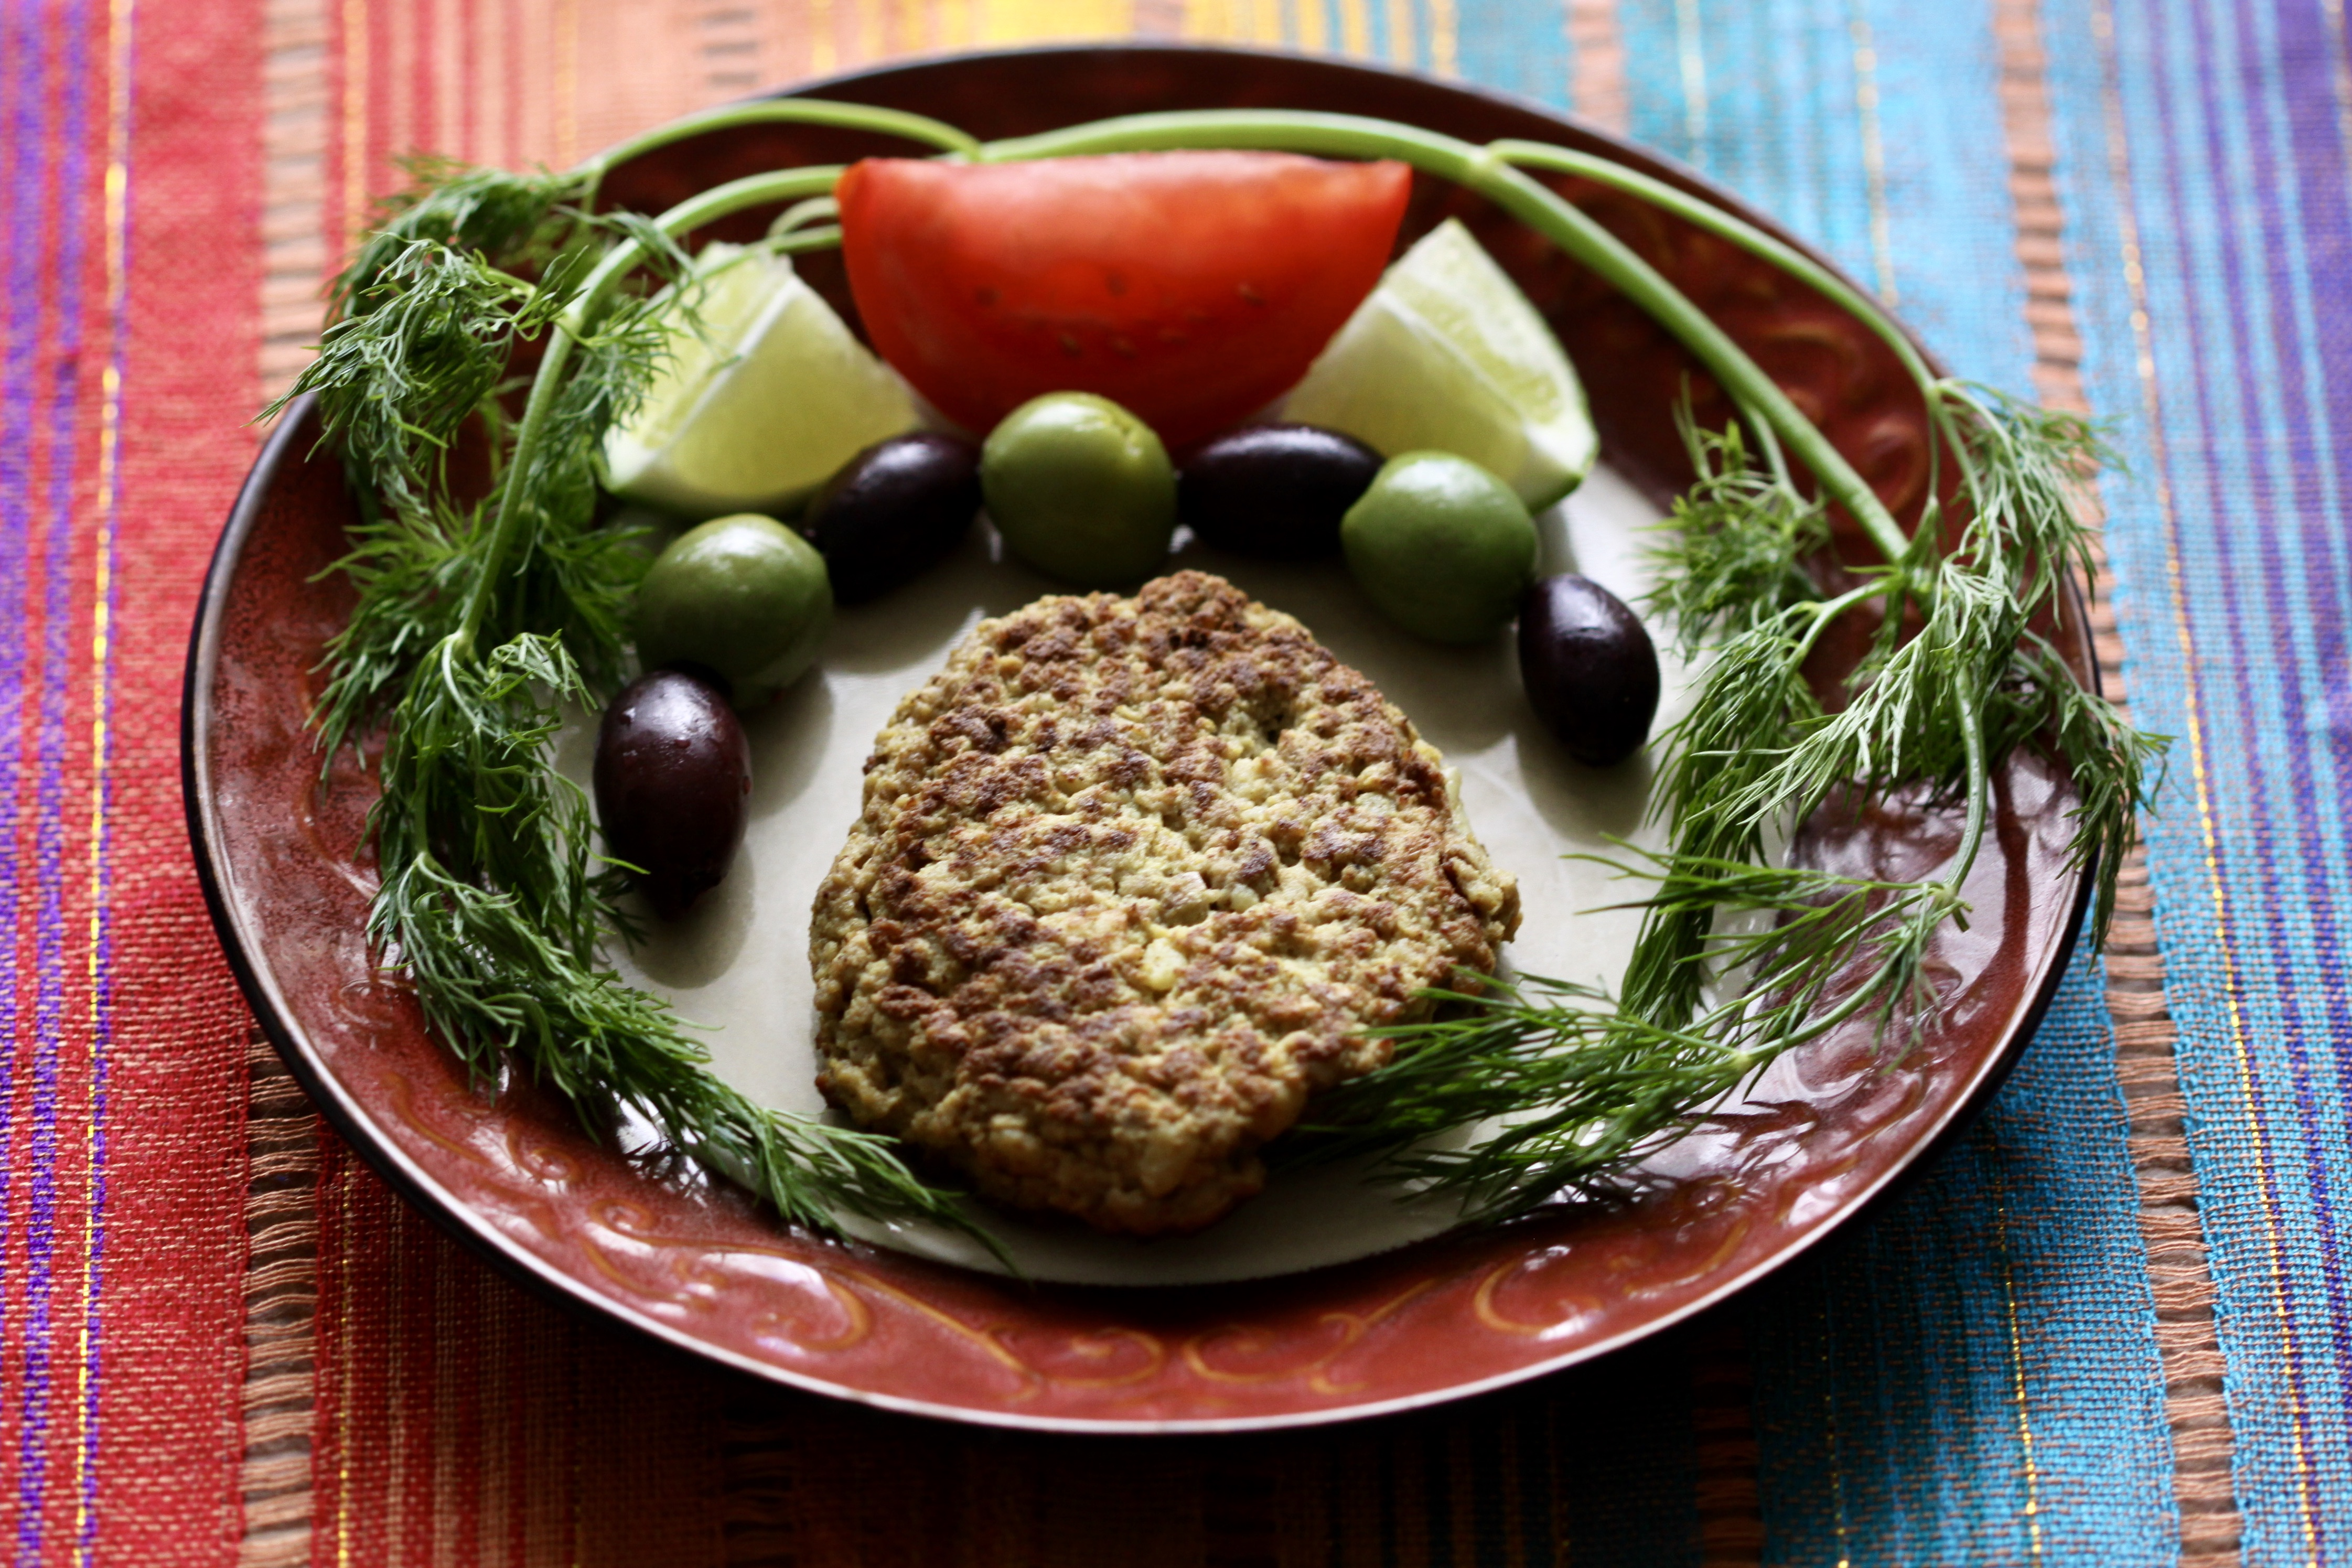 Cutlet and vegetables